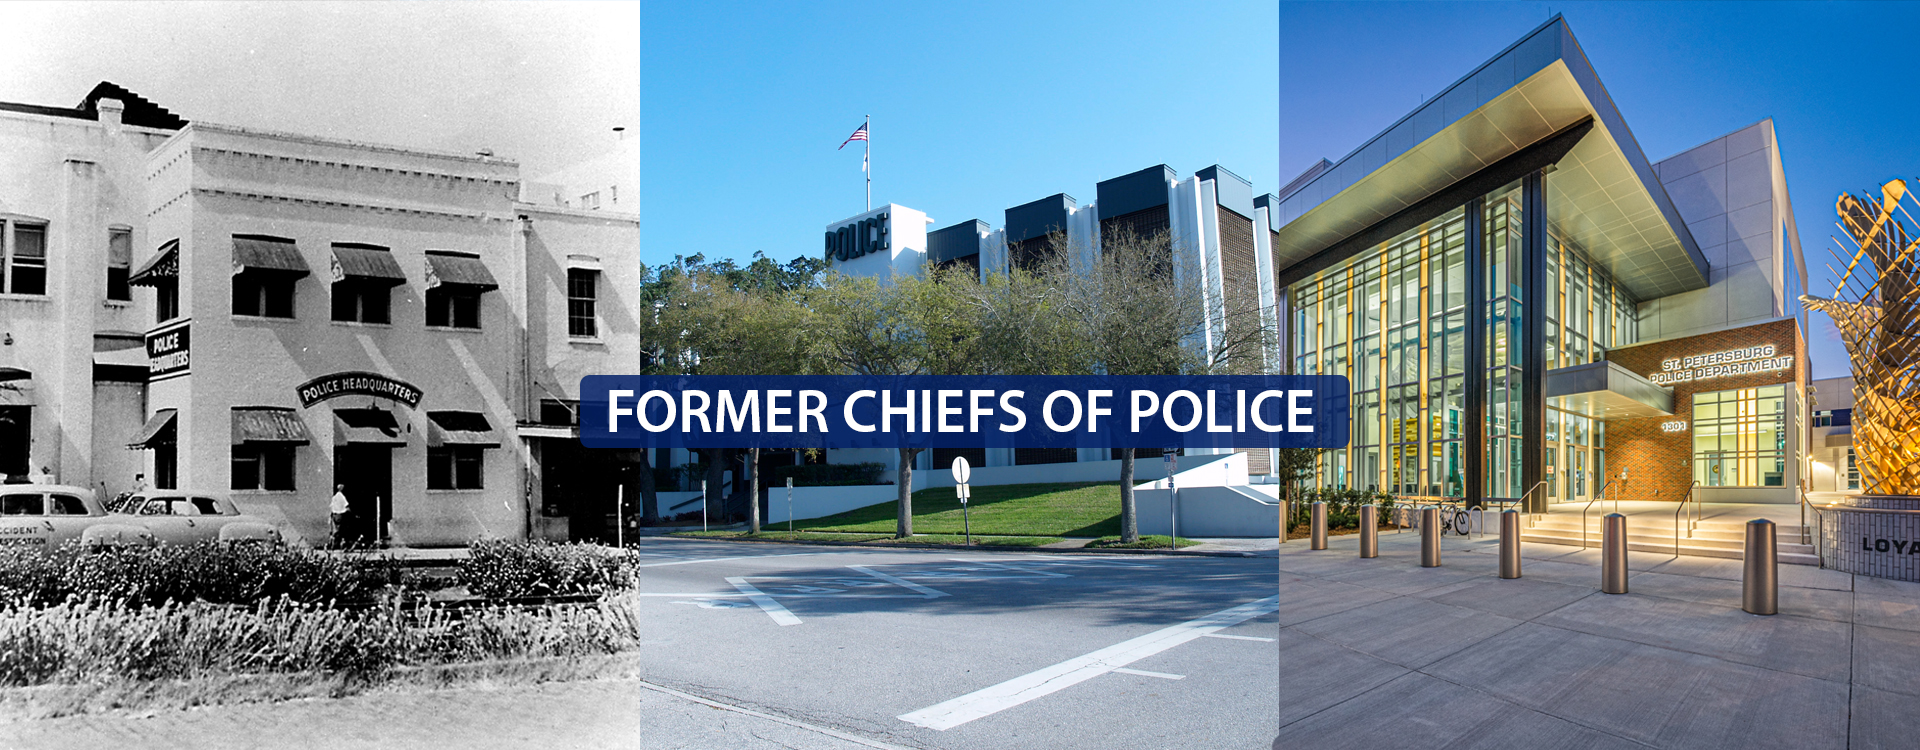 Former Chiefs of Police